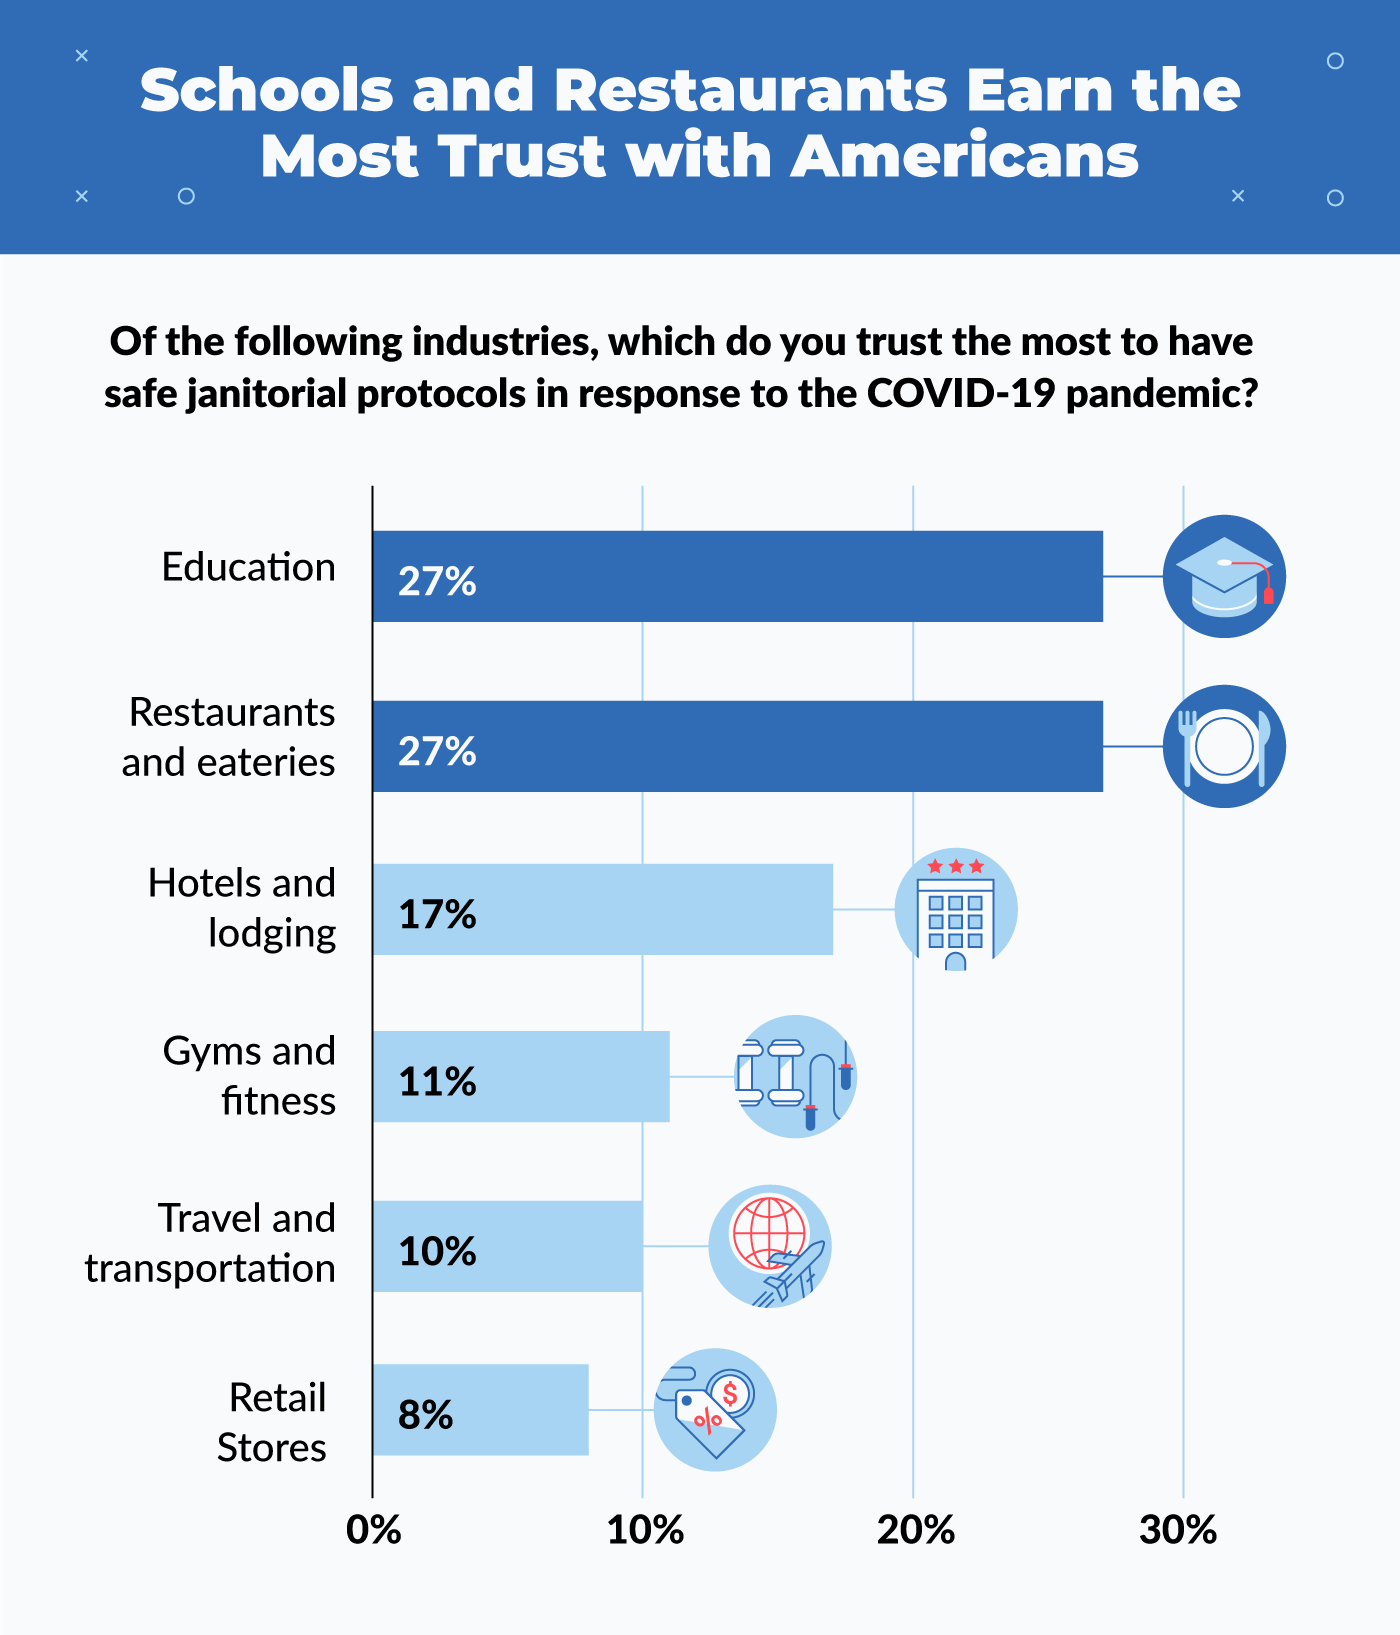 schools and restaurants earn the most trust with Americans